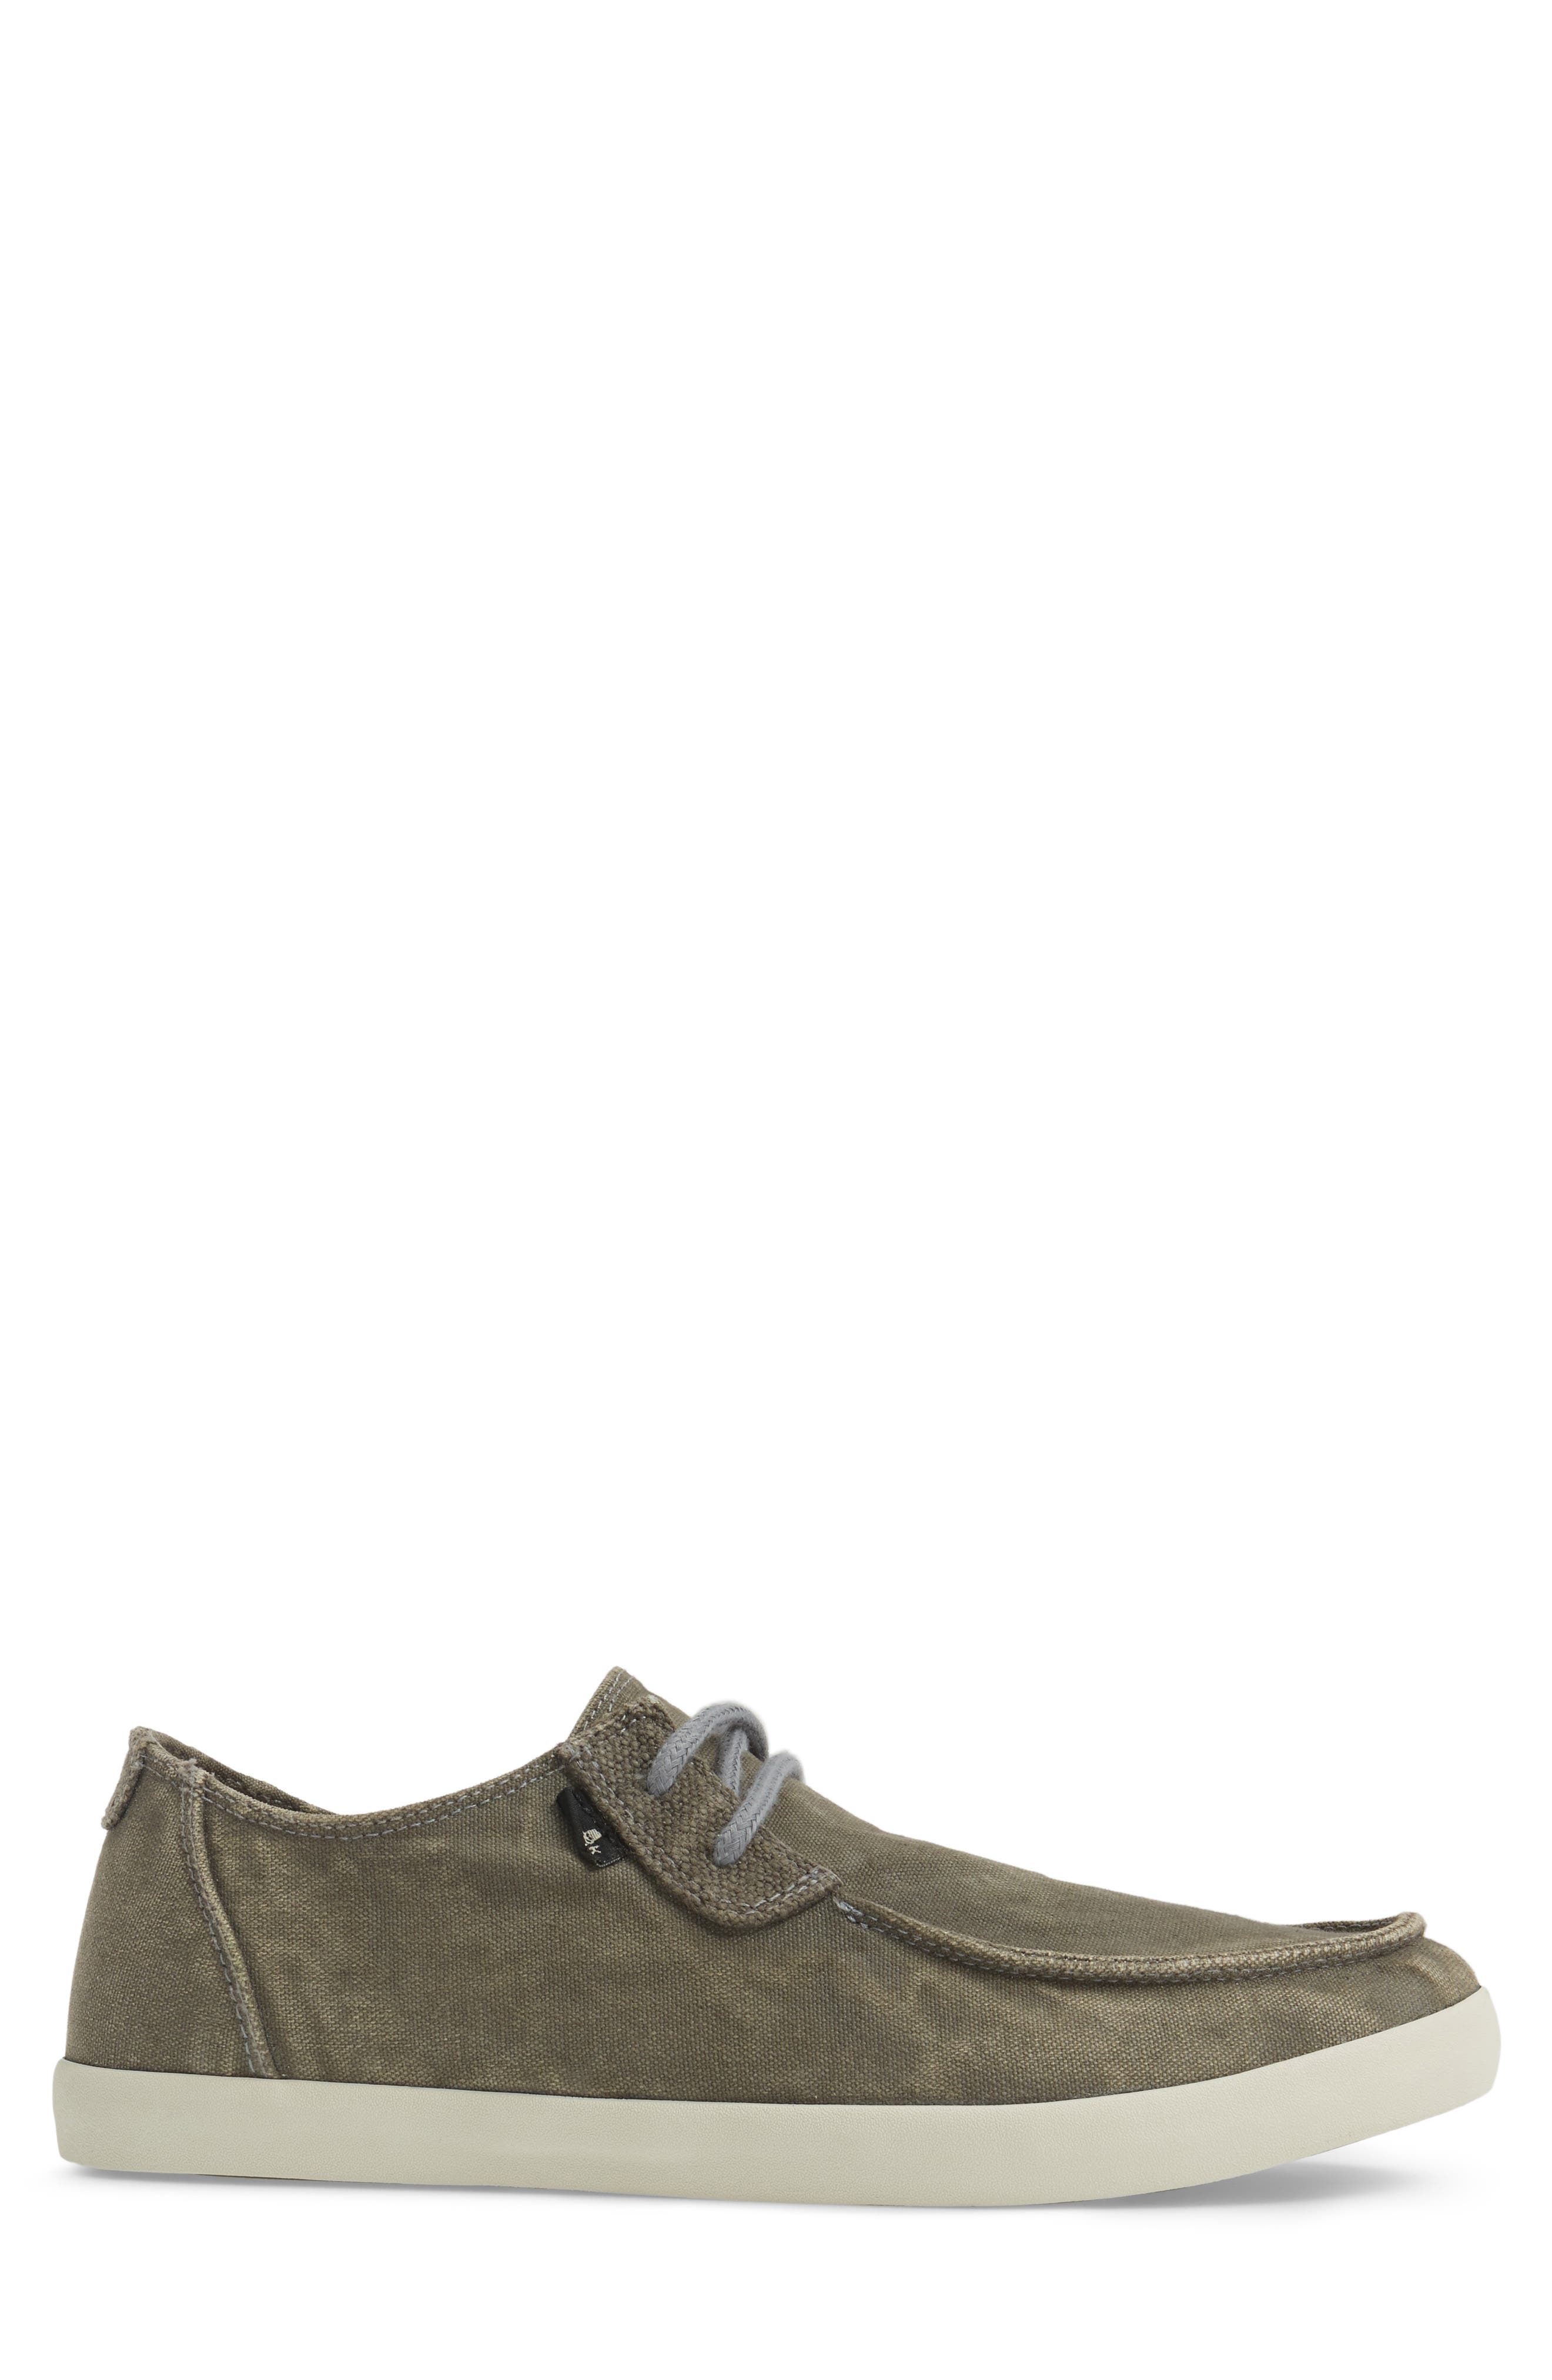 Numami Sneaker,                             Alternate thumbnail 3, color,                             Washed Grey Canvas